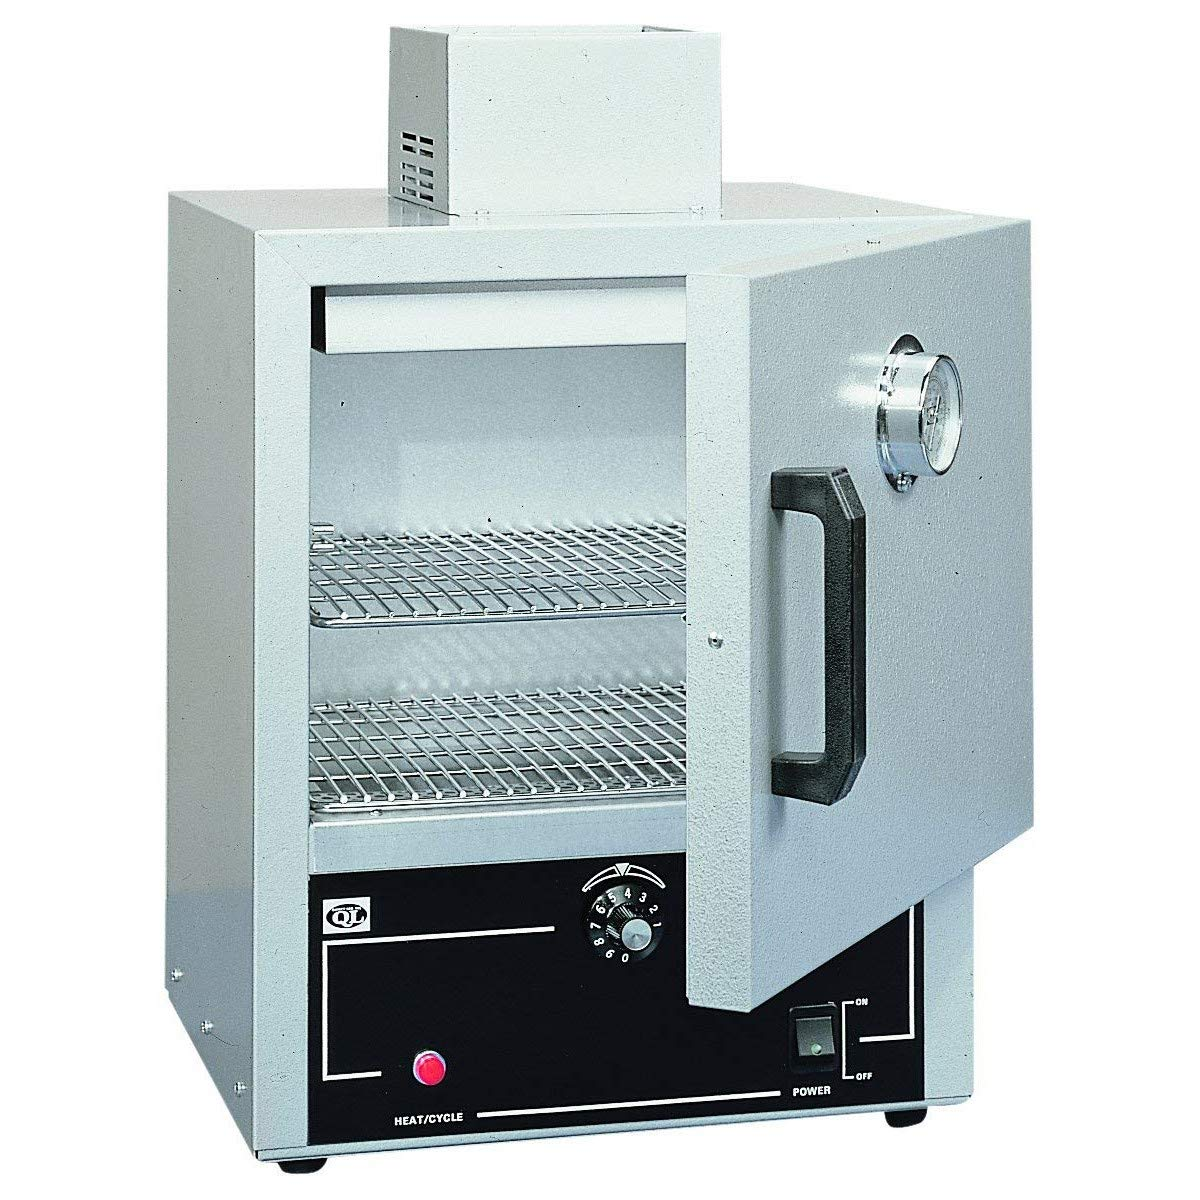 Purchase Quincy Lab 10AF Steel Bi-Metal 0.6 C Forced-Air Oven Laboratory Max 89% OFF